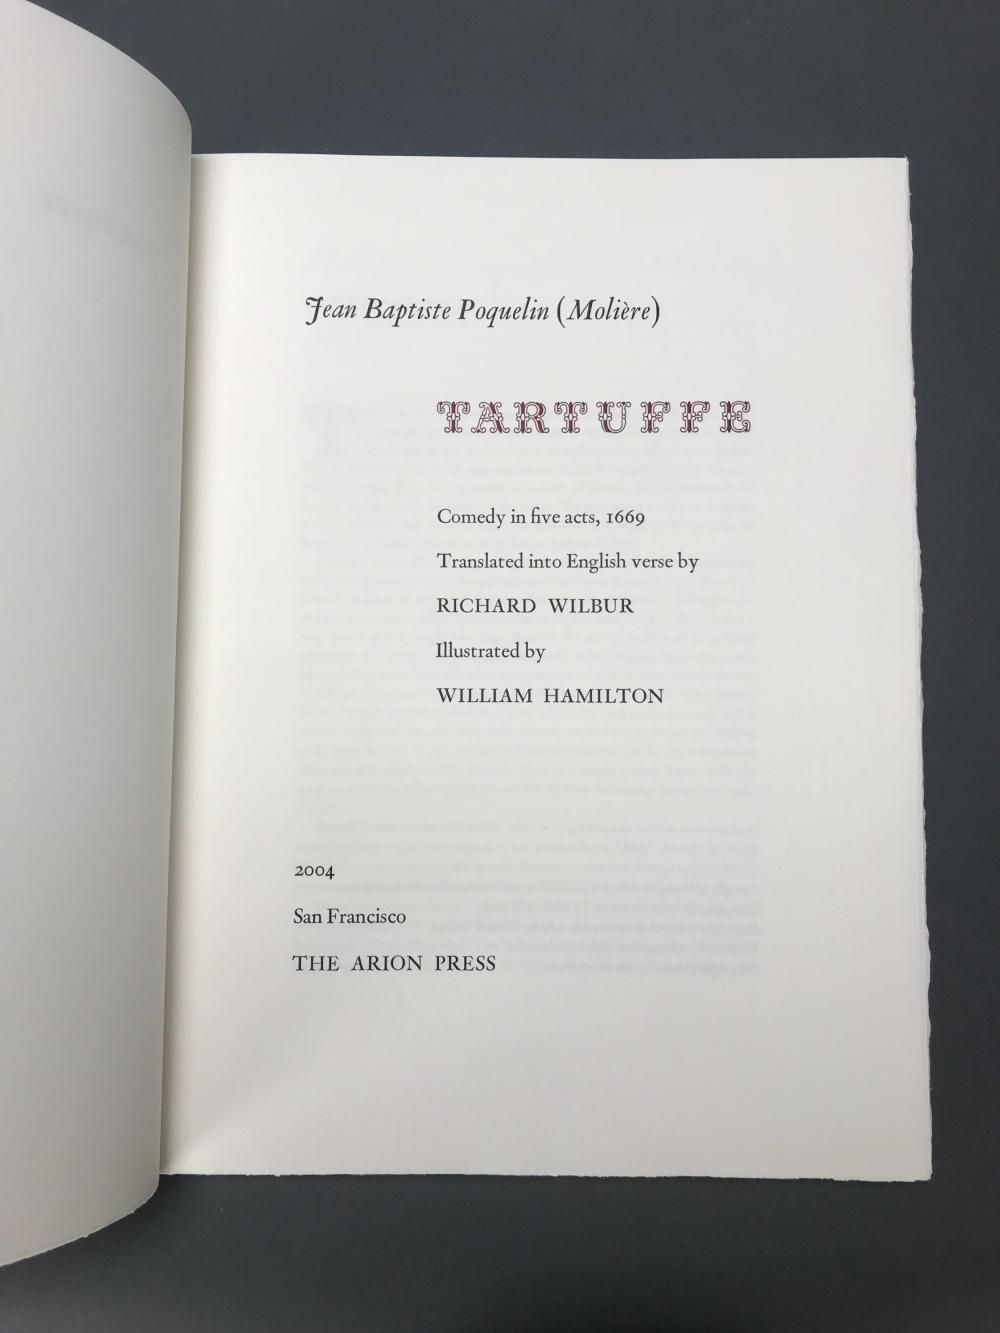 Lot 198: Arion Press. Tartuffe. Number 70 of 300. Signed.